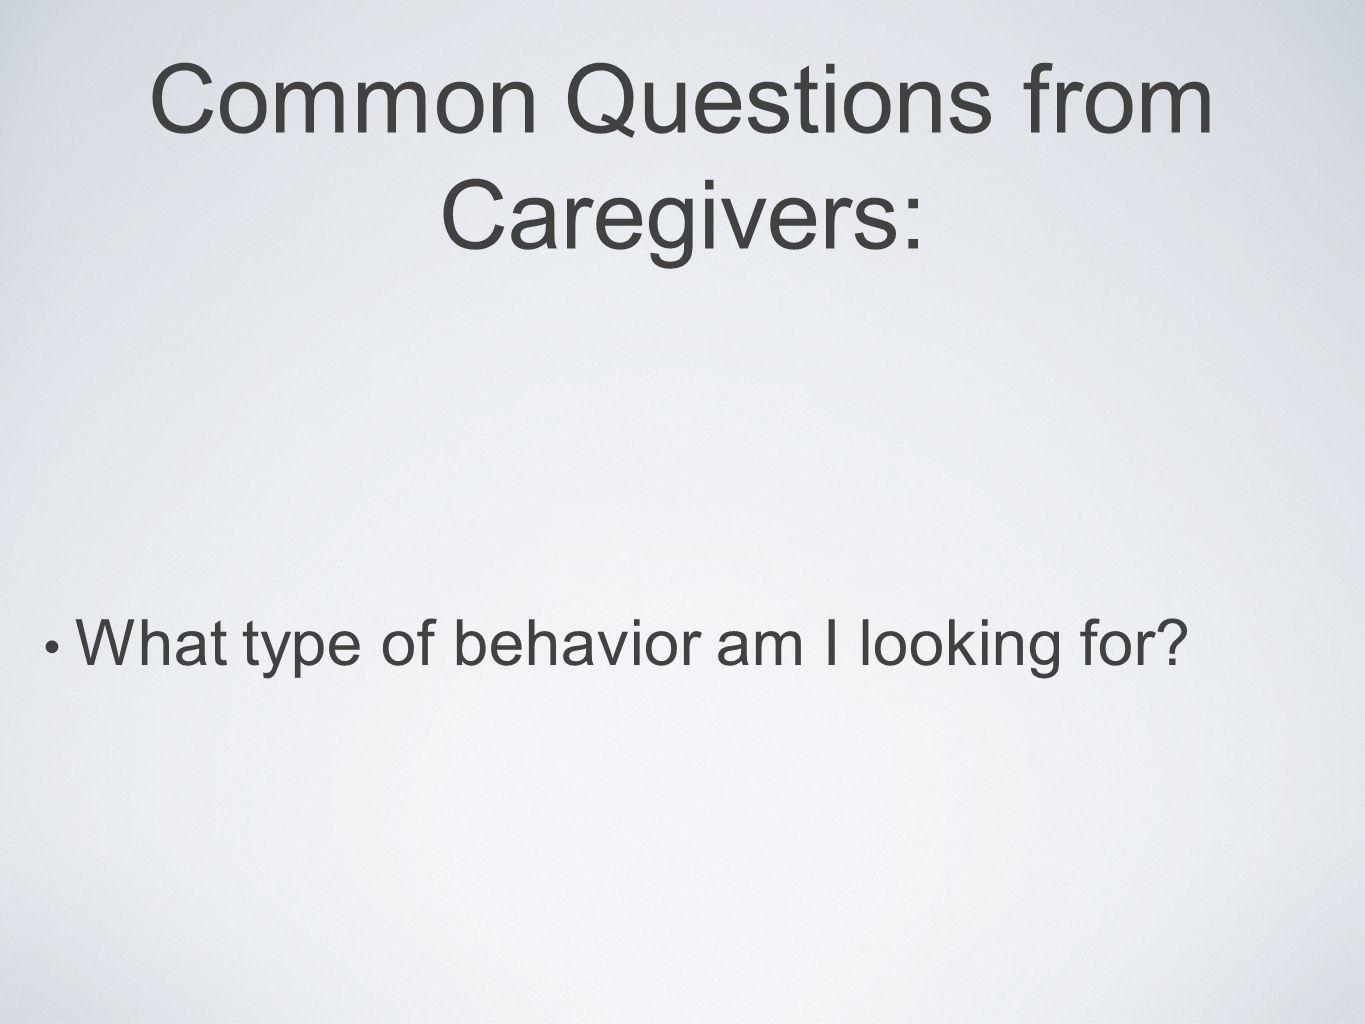 Common Questions from Caregivers: